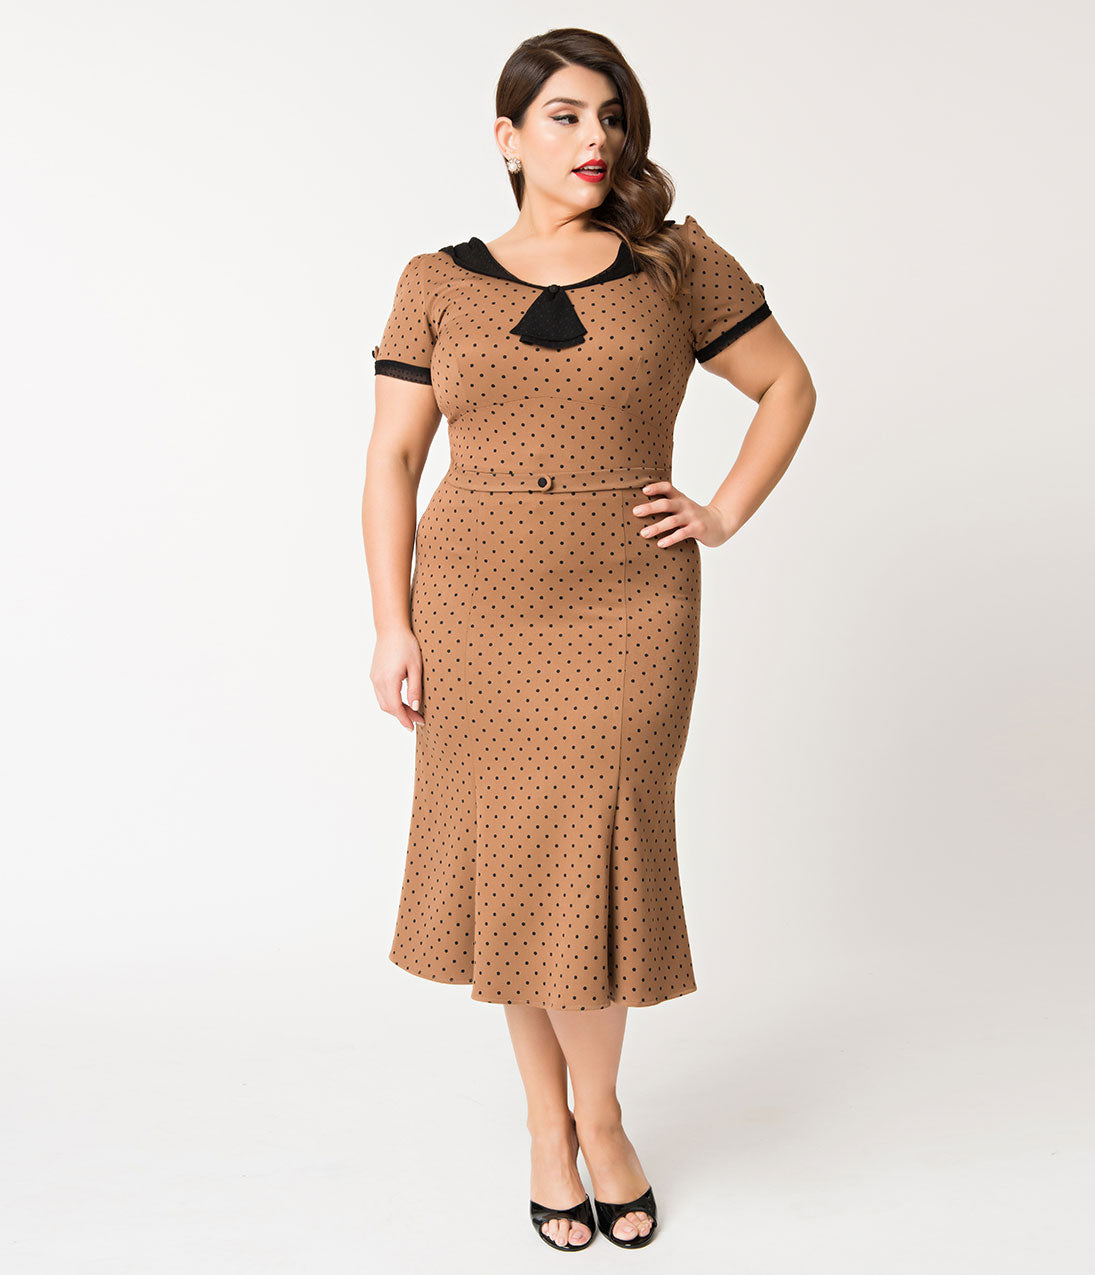 Vintage Polka Dot Dresses – 50s Spotty and Ditsy Prints Stop Staring Plus Size 1930S Tan  Black Dot Railene Dress $172.00 AT vintagedancer.com